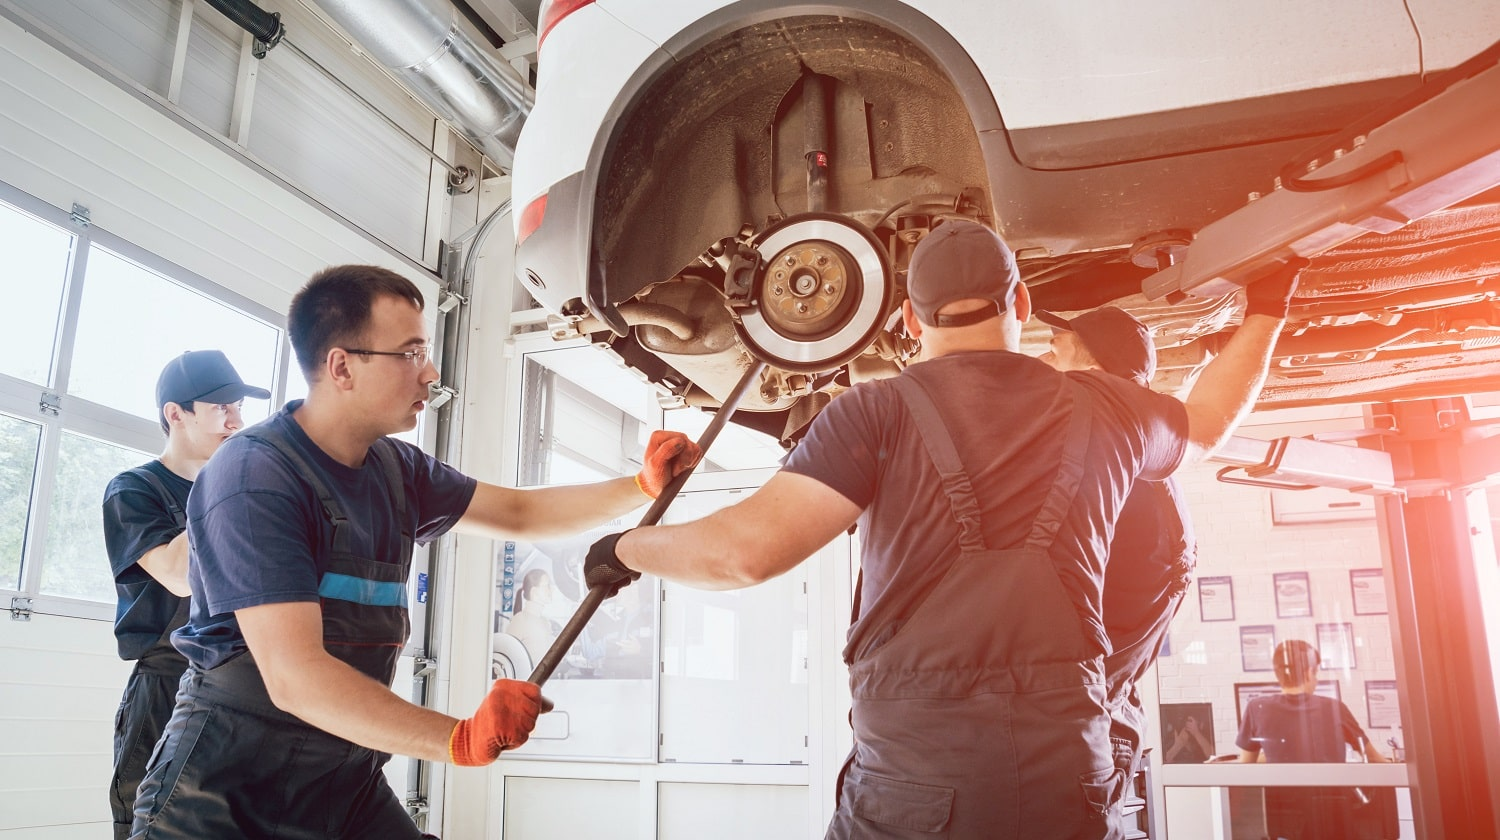 Car mechanics repair car suspension of lifted automobile at repair service station. Background